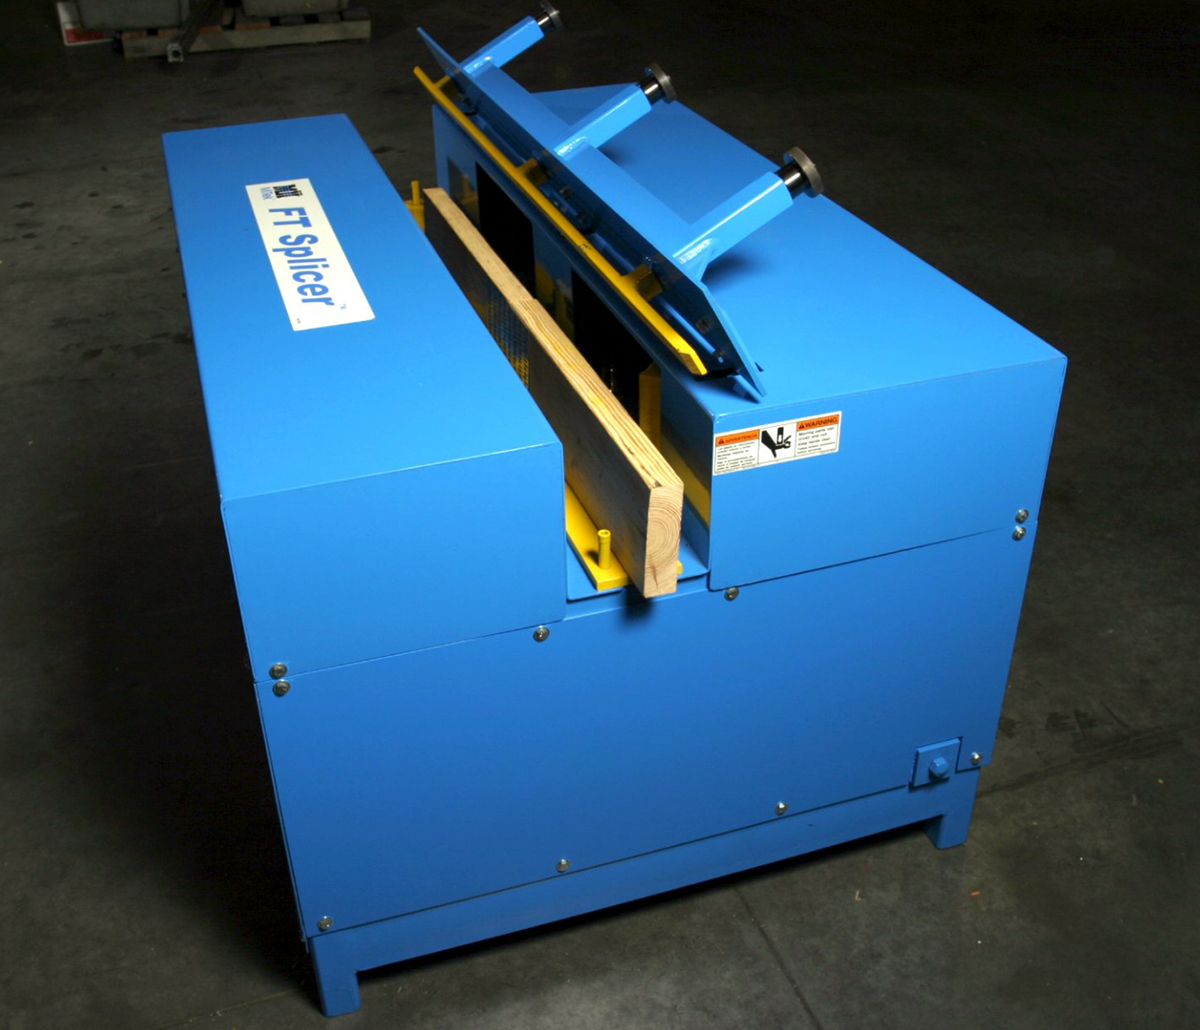 MiTek FT Splicer Automated Solutions - FT Splicer in facility